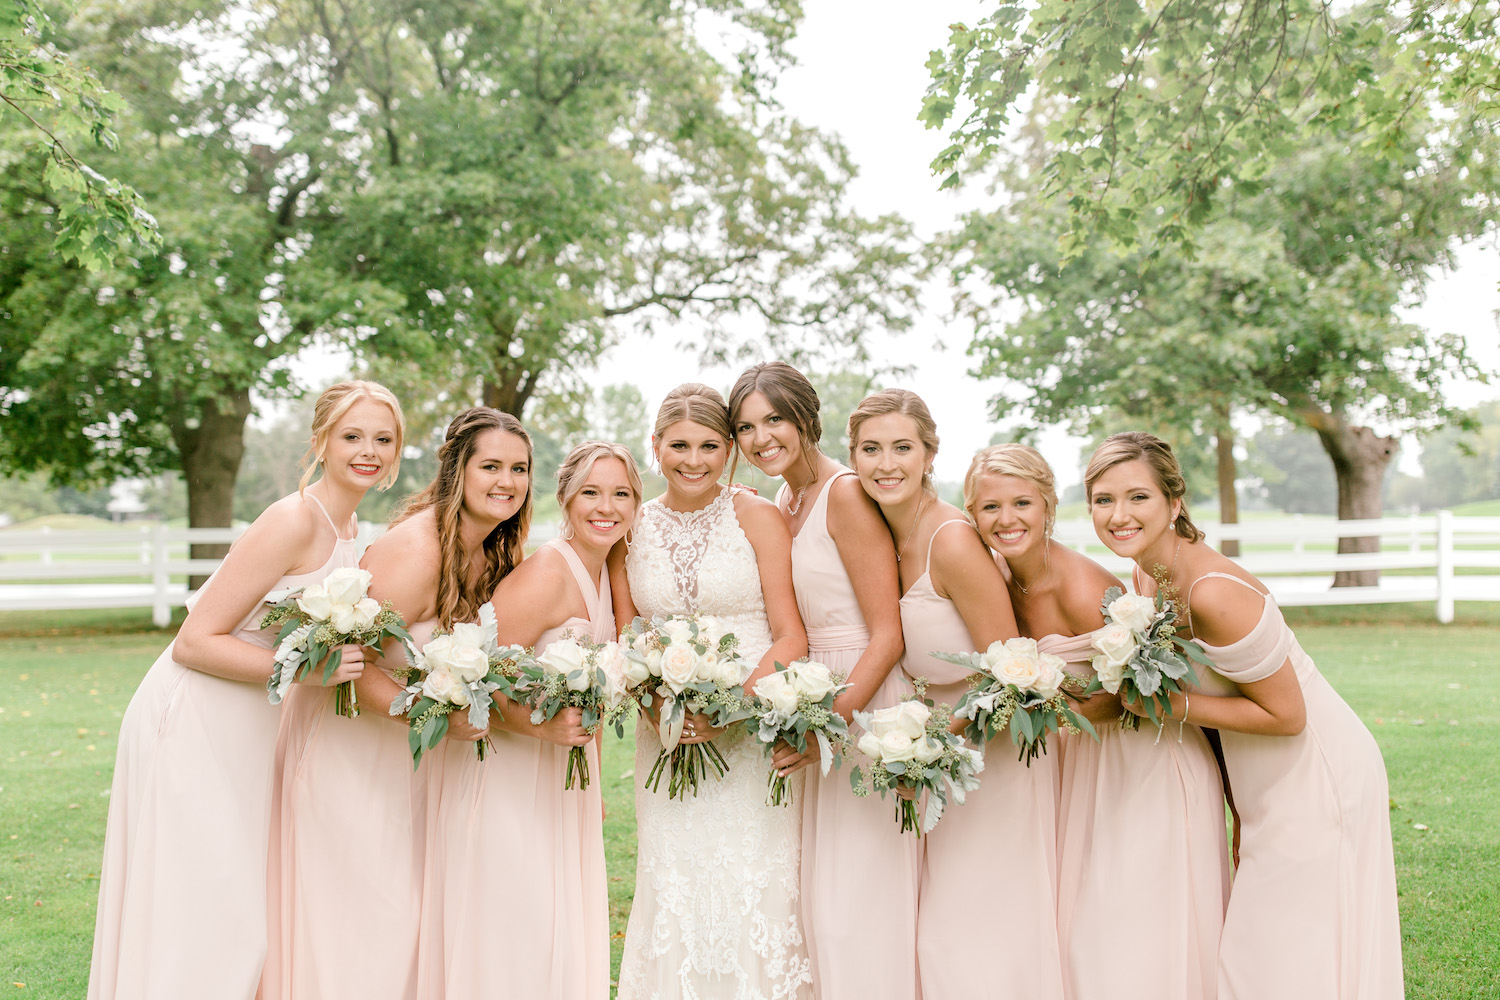 Bridesmaids standing with bride at Wallinwood Springs Golf Course wedding